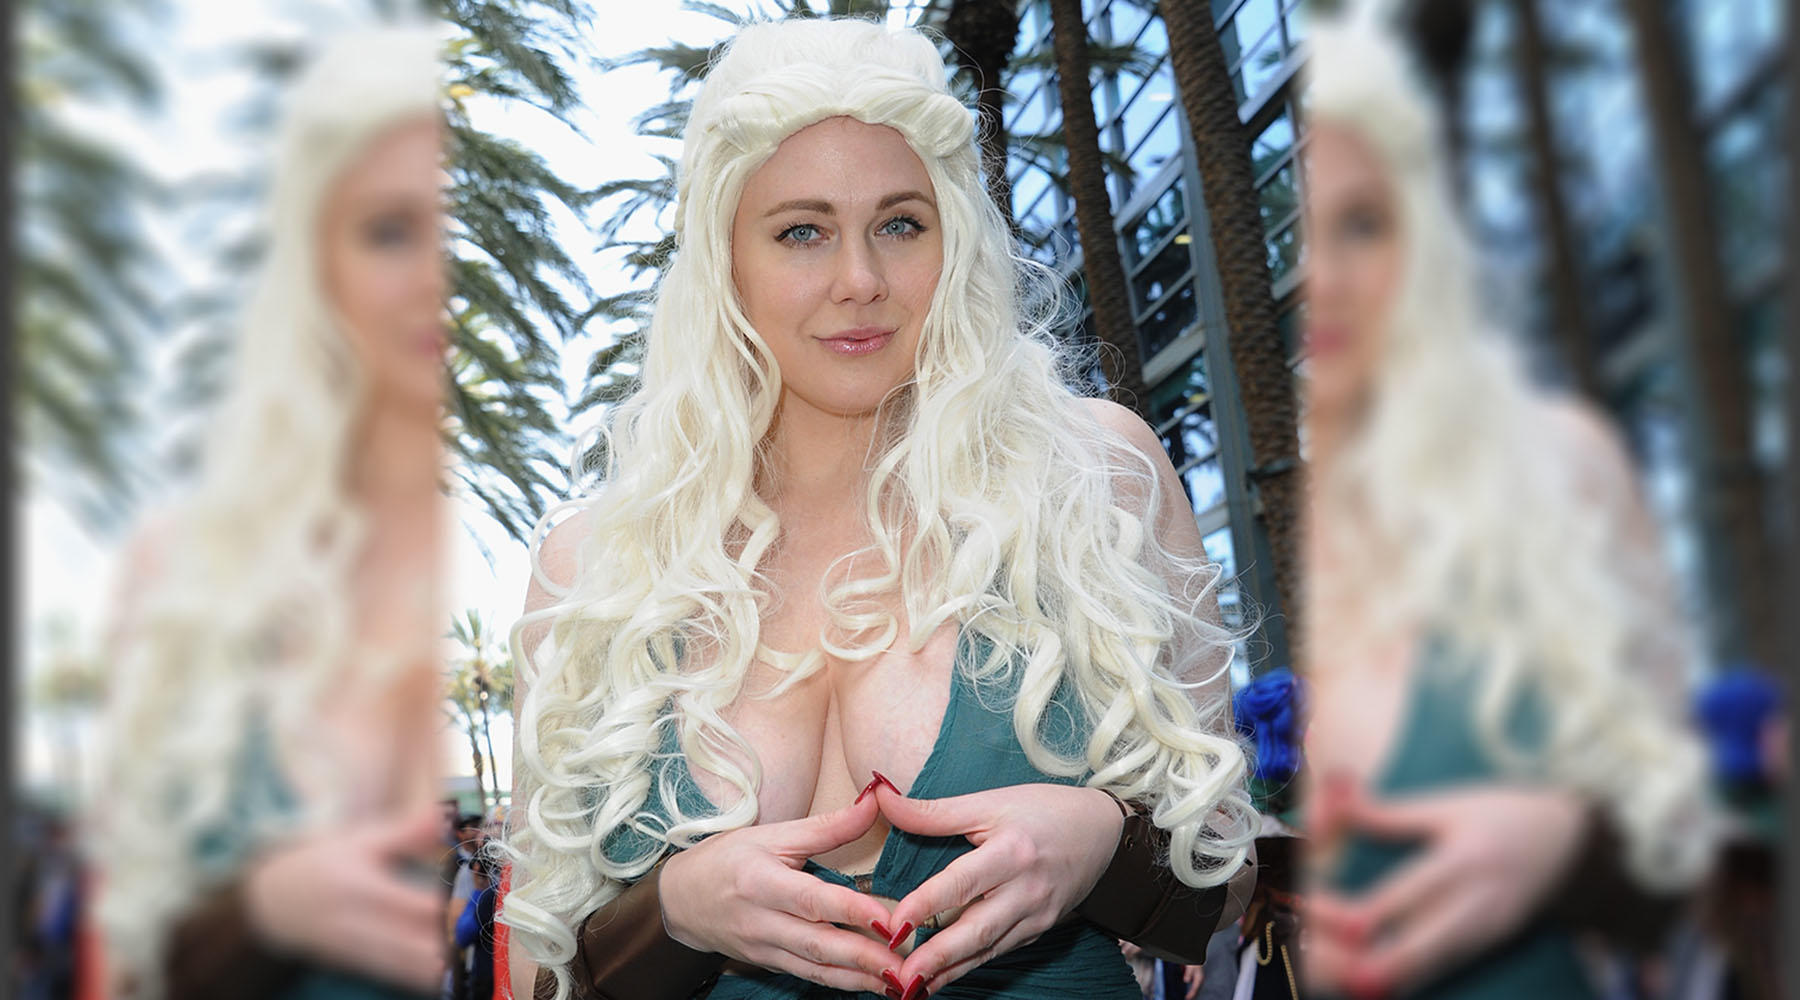 From actress to cosplayer